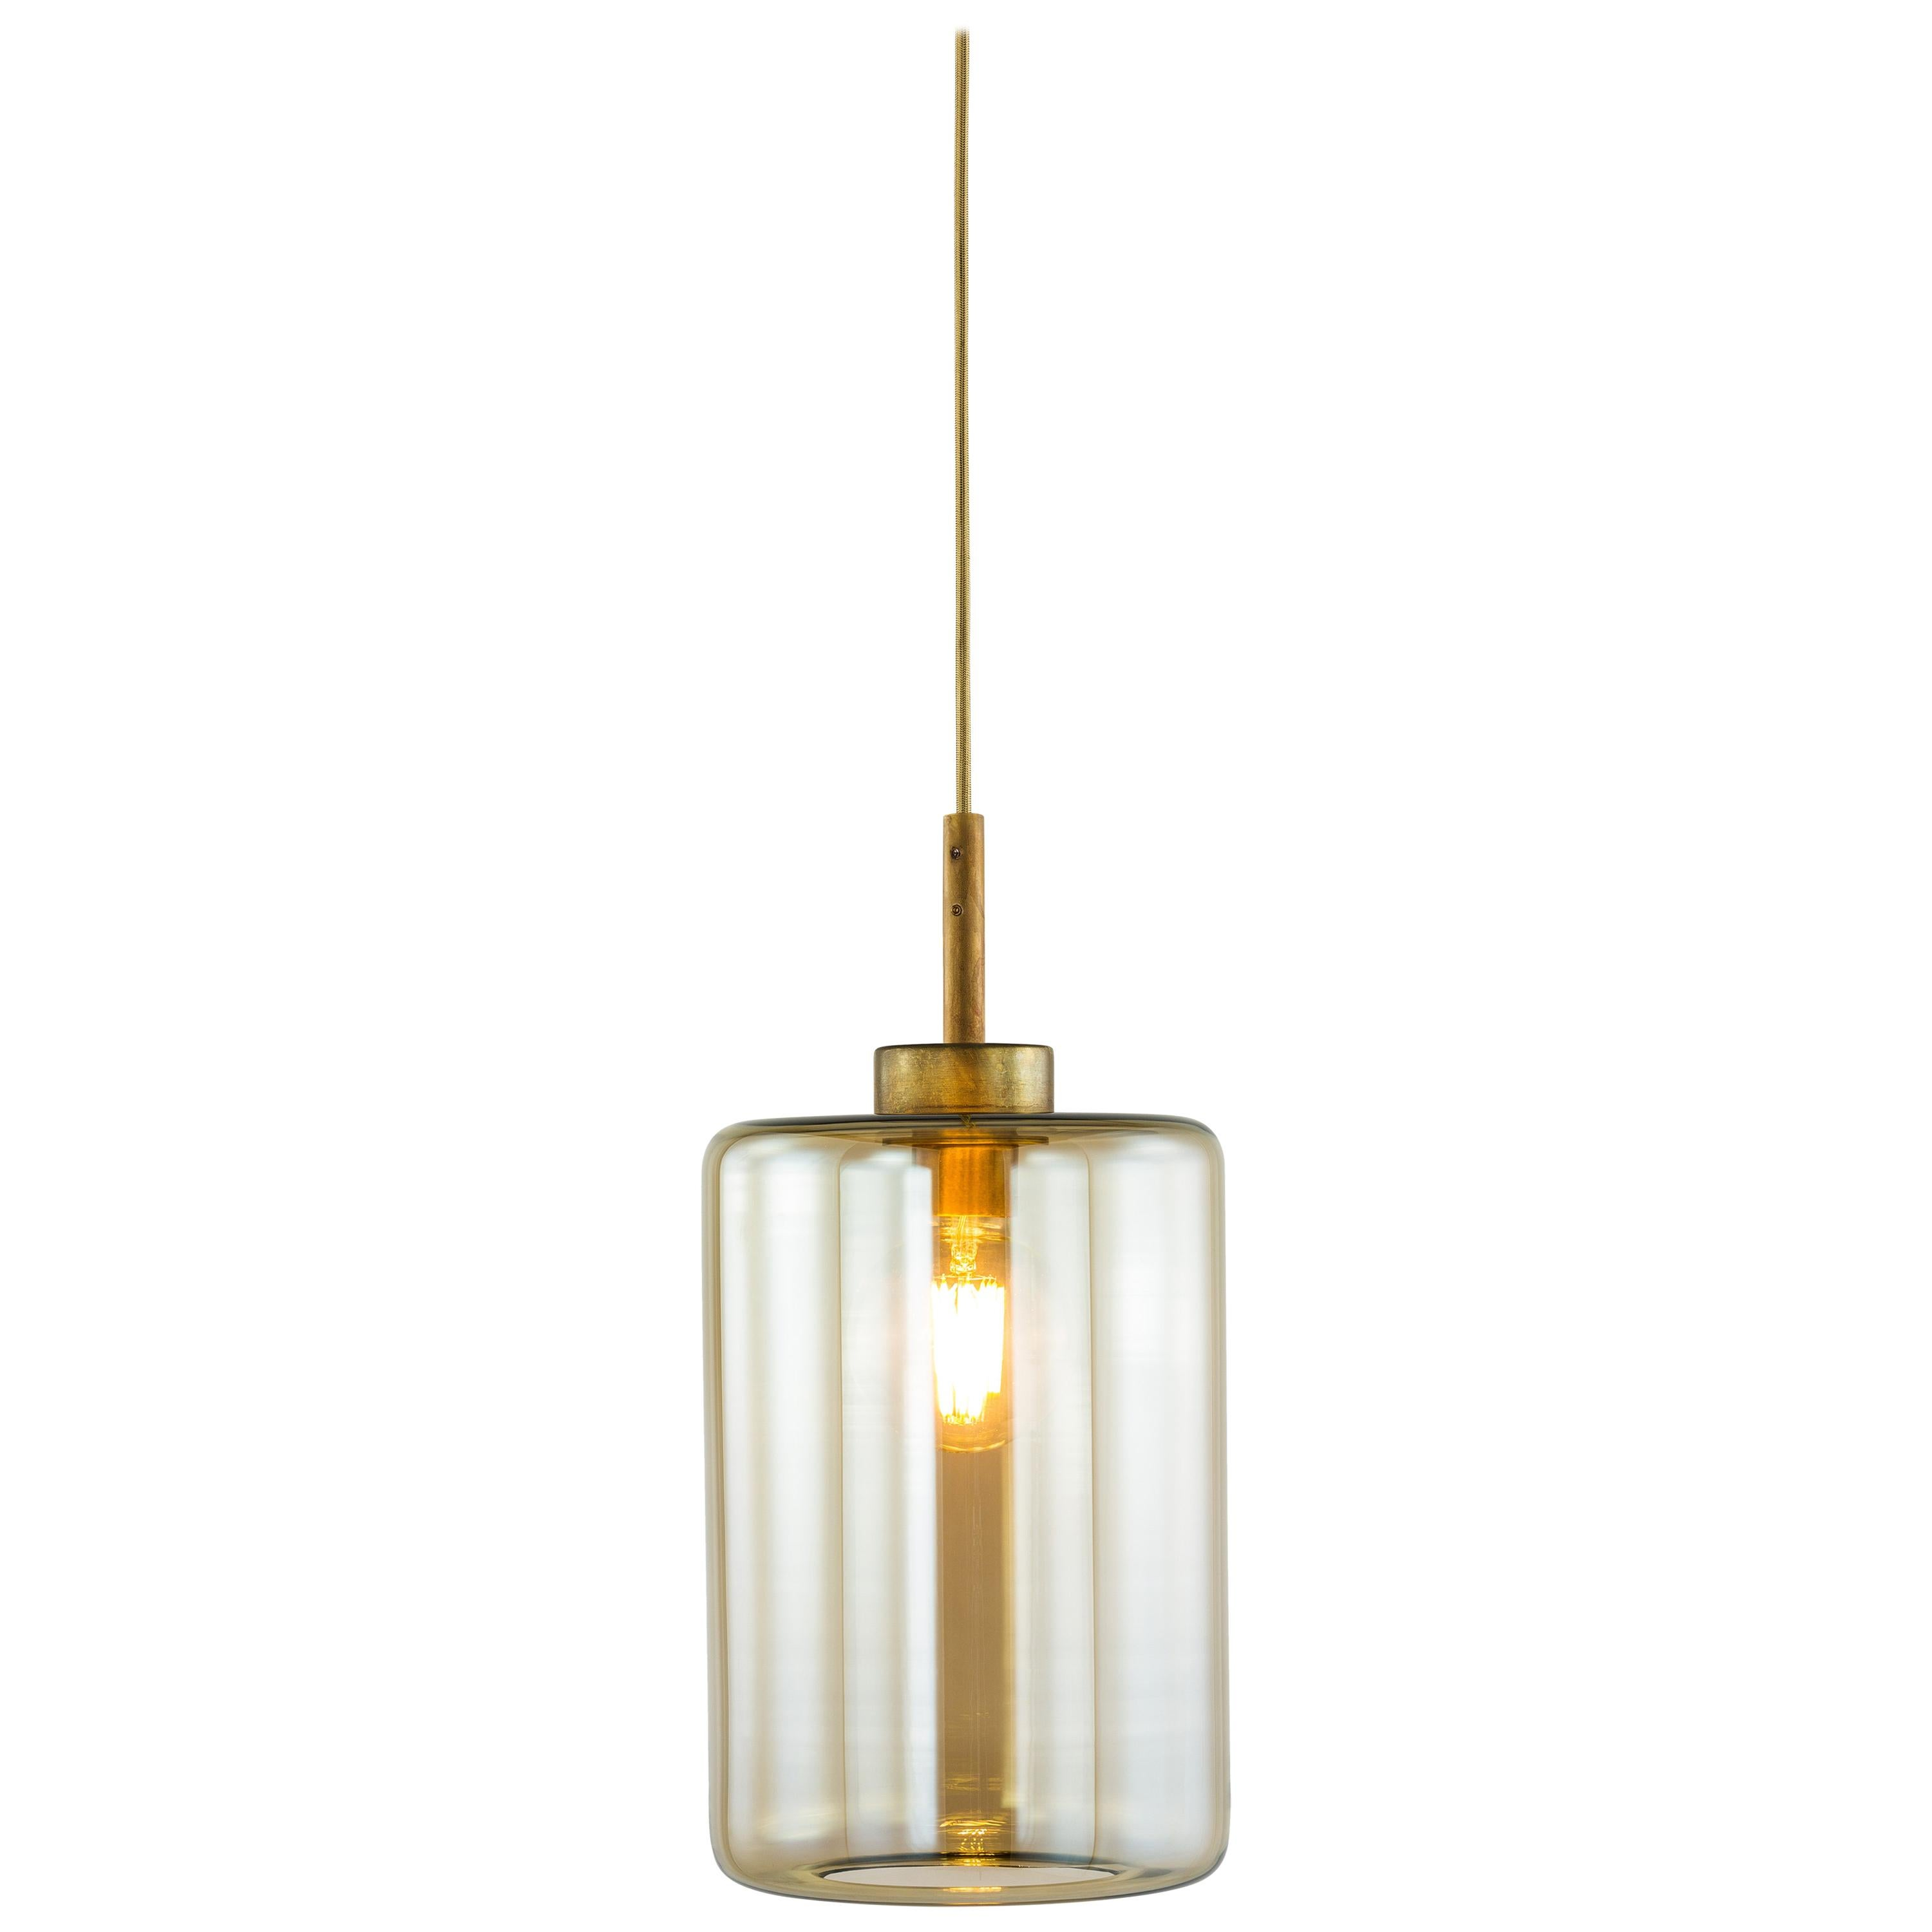 Modern Pendant with Colored Glass in a Brass Burnished Finish, Louise